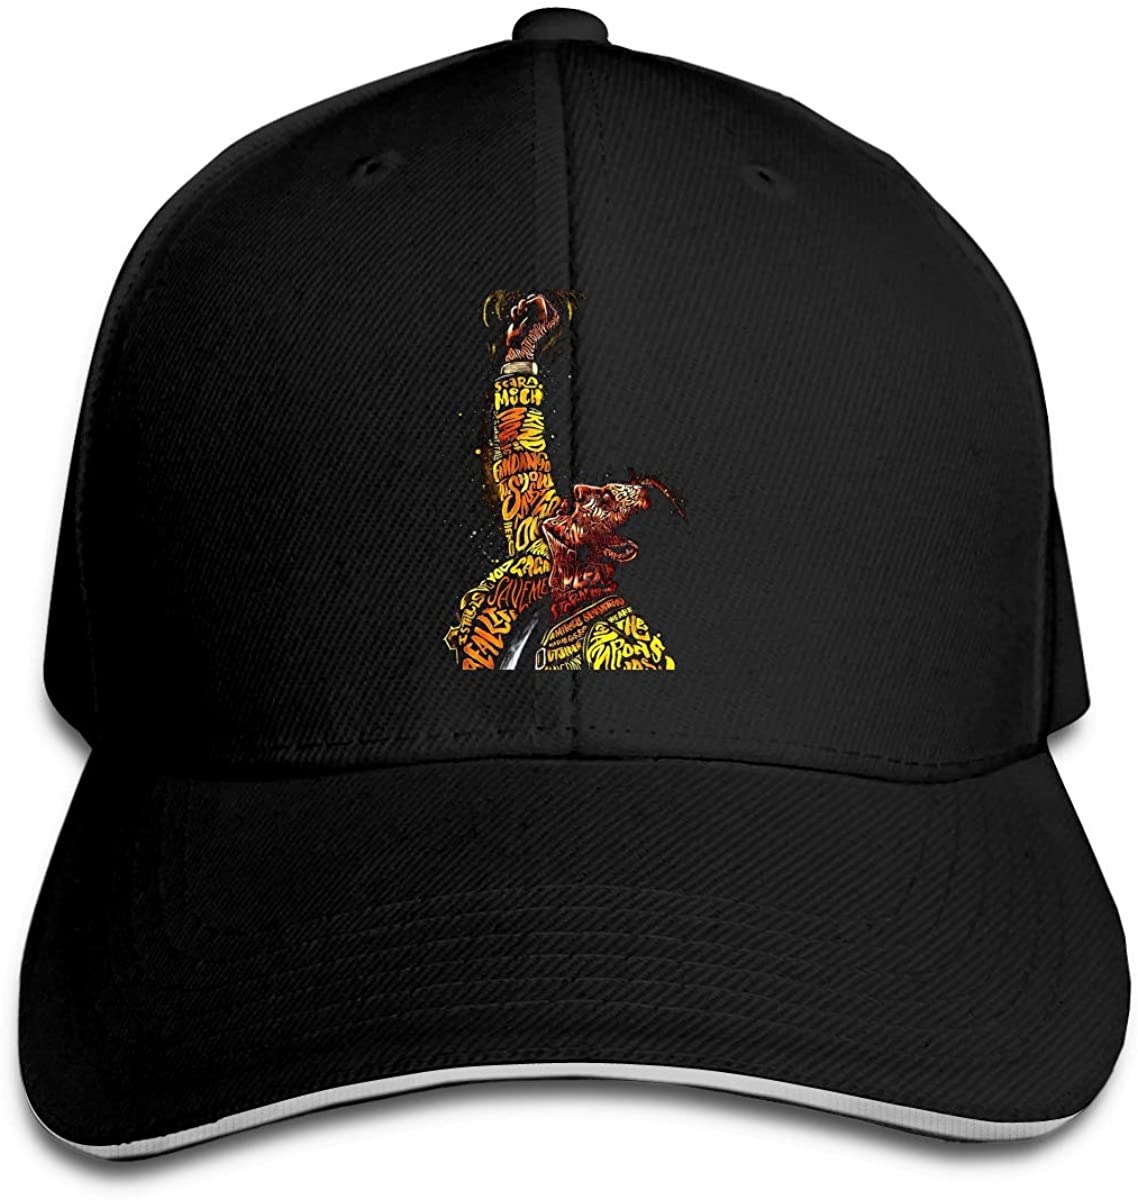 Queen Rock Band Classic Baseball Cap Unisex Cotton Adjustable Hat for Kids Teens Adults